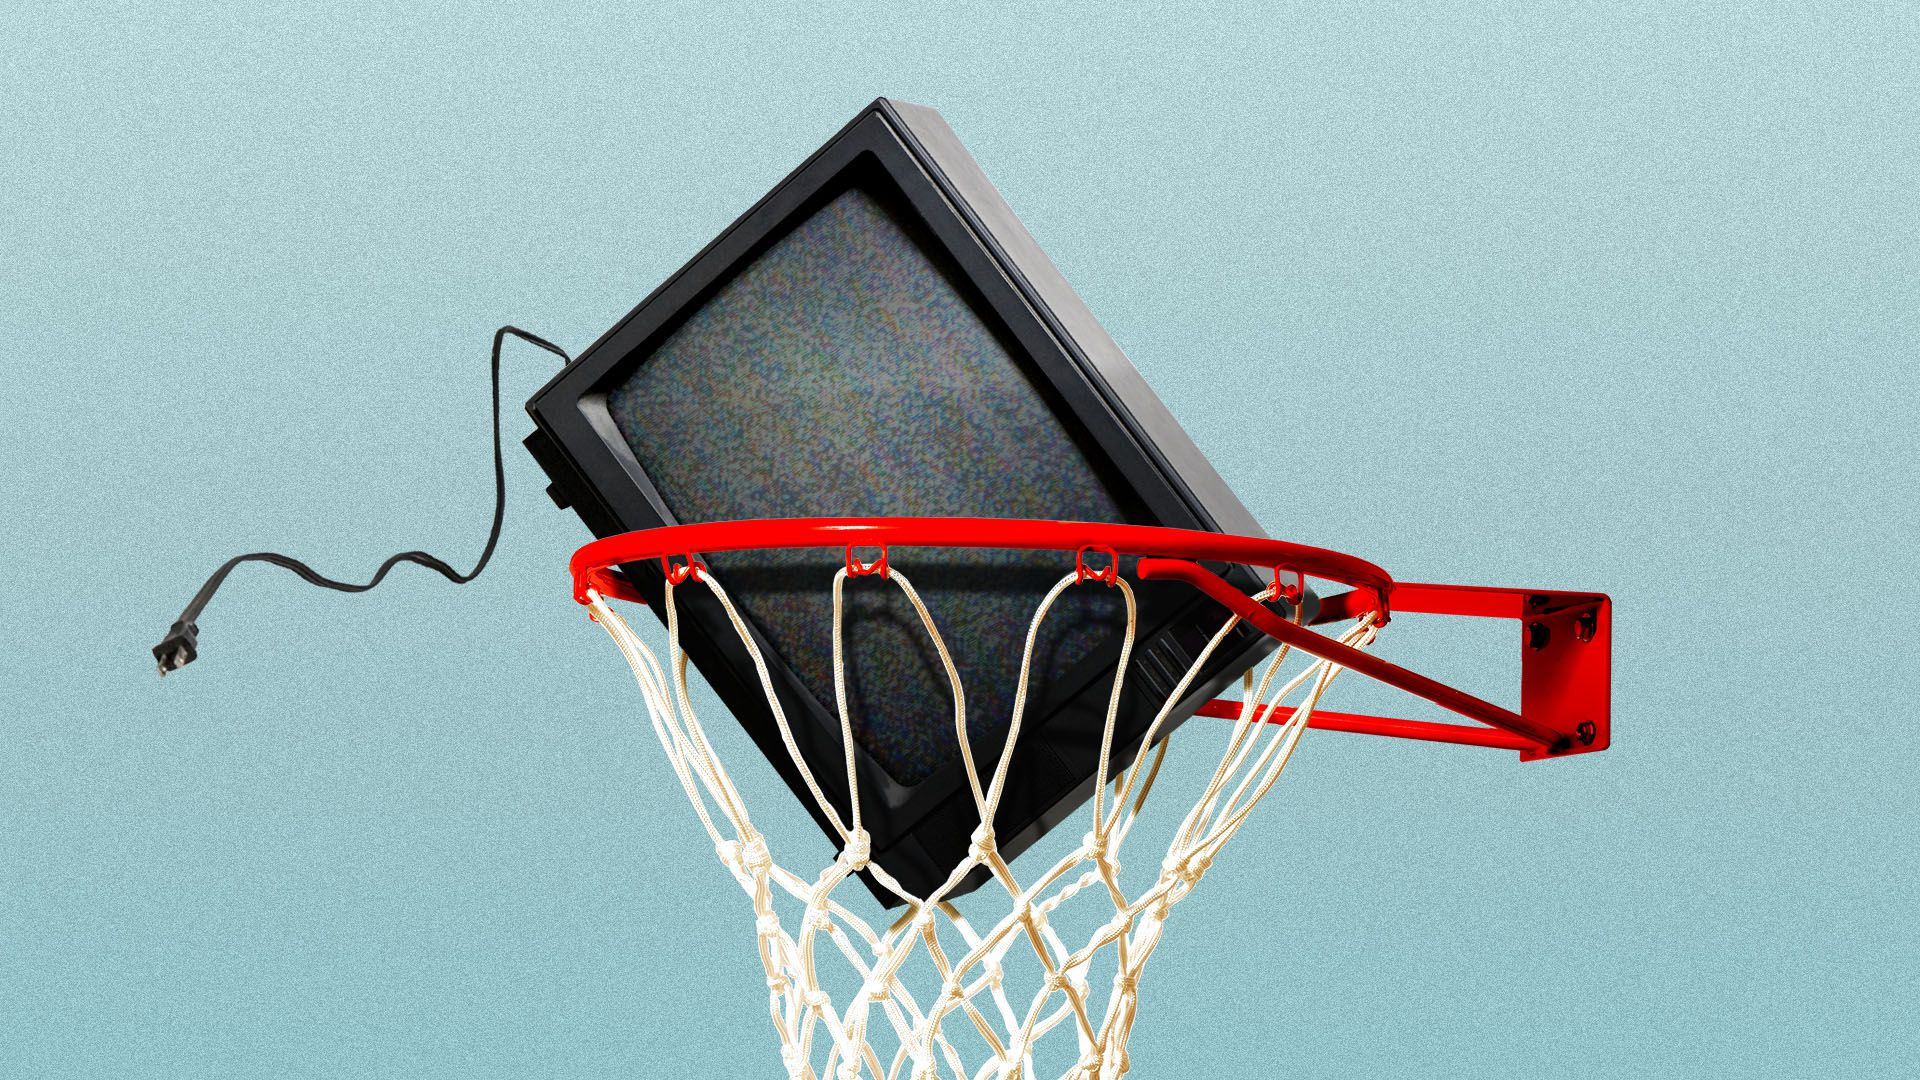 Illustration of a television falling through a basketball hoop